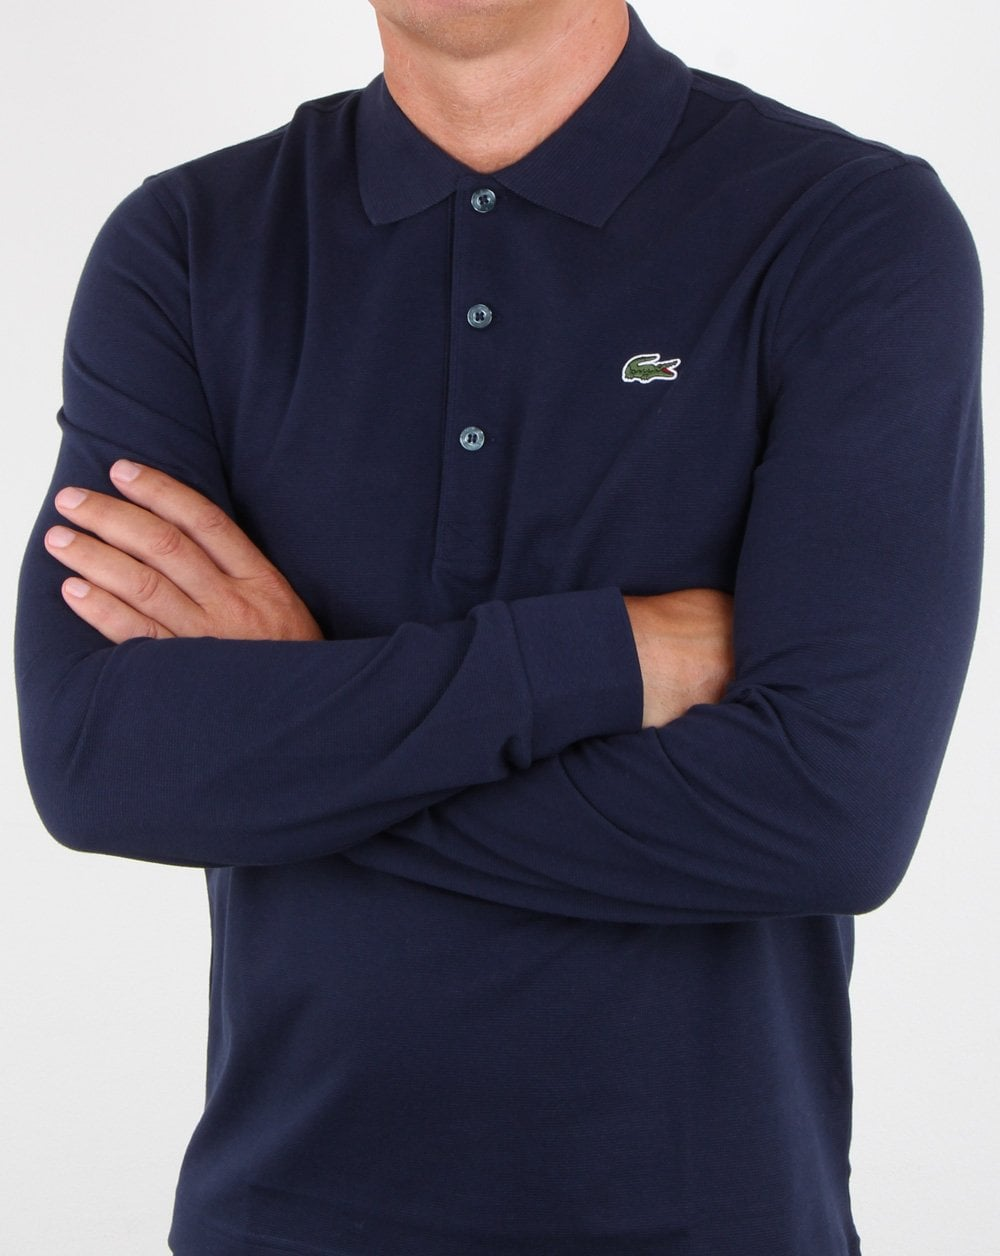 Sleeve Polo Long Navy Lacoste Lacoste Lacoste Sleeve Navy Long Polo ZuXikPTO